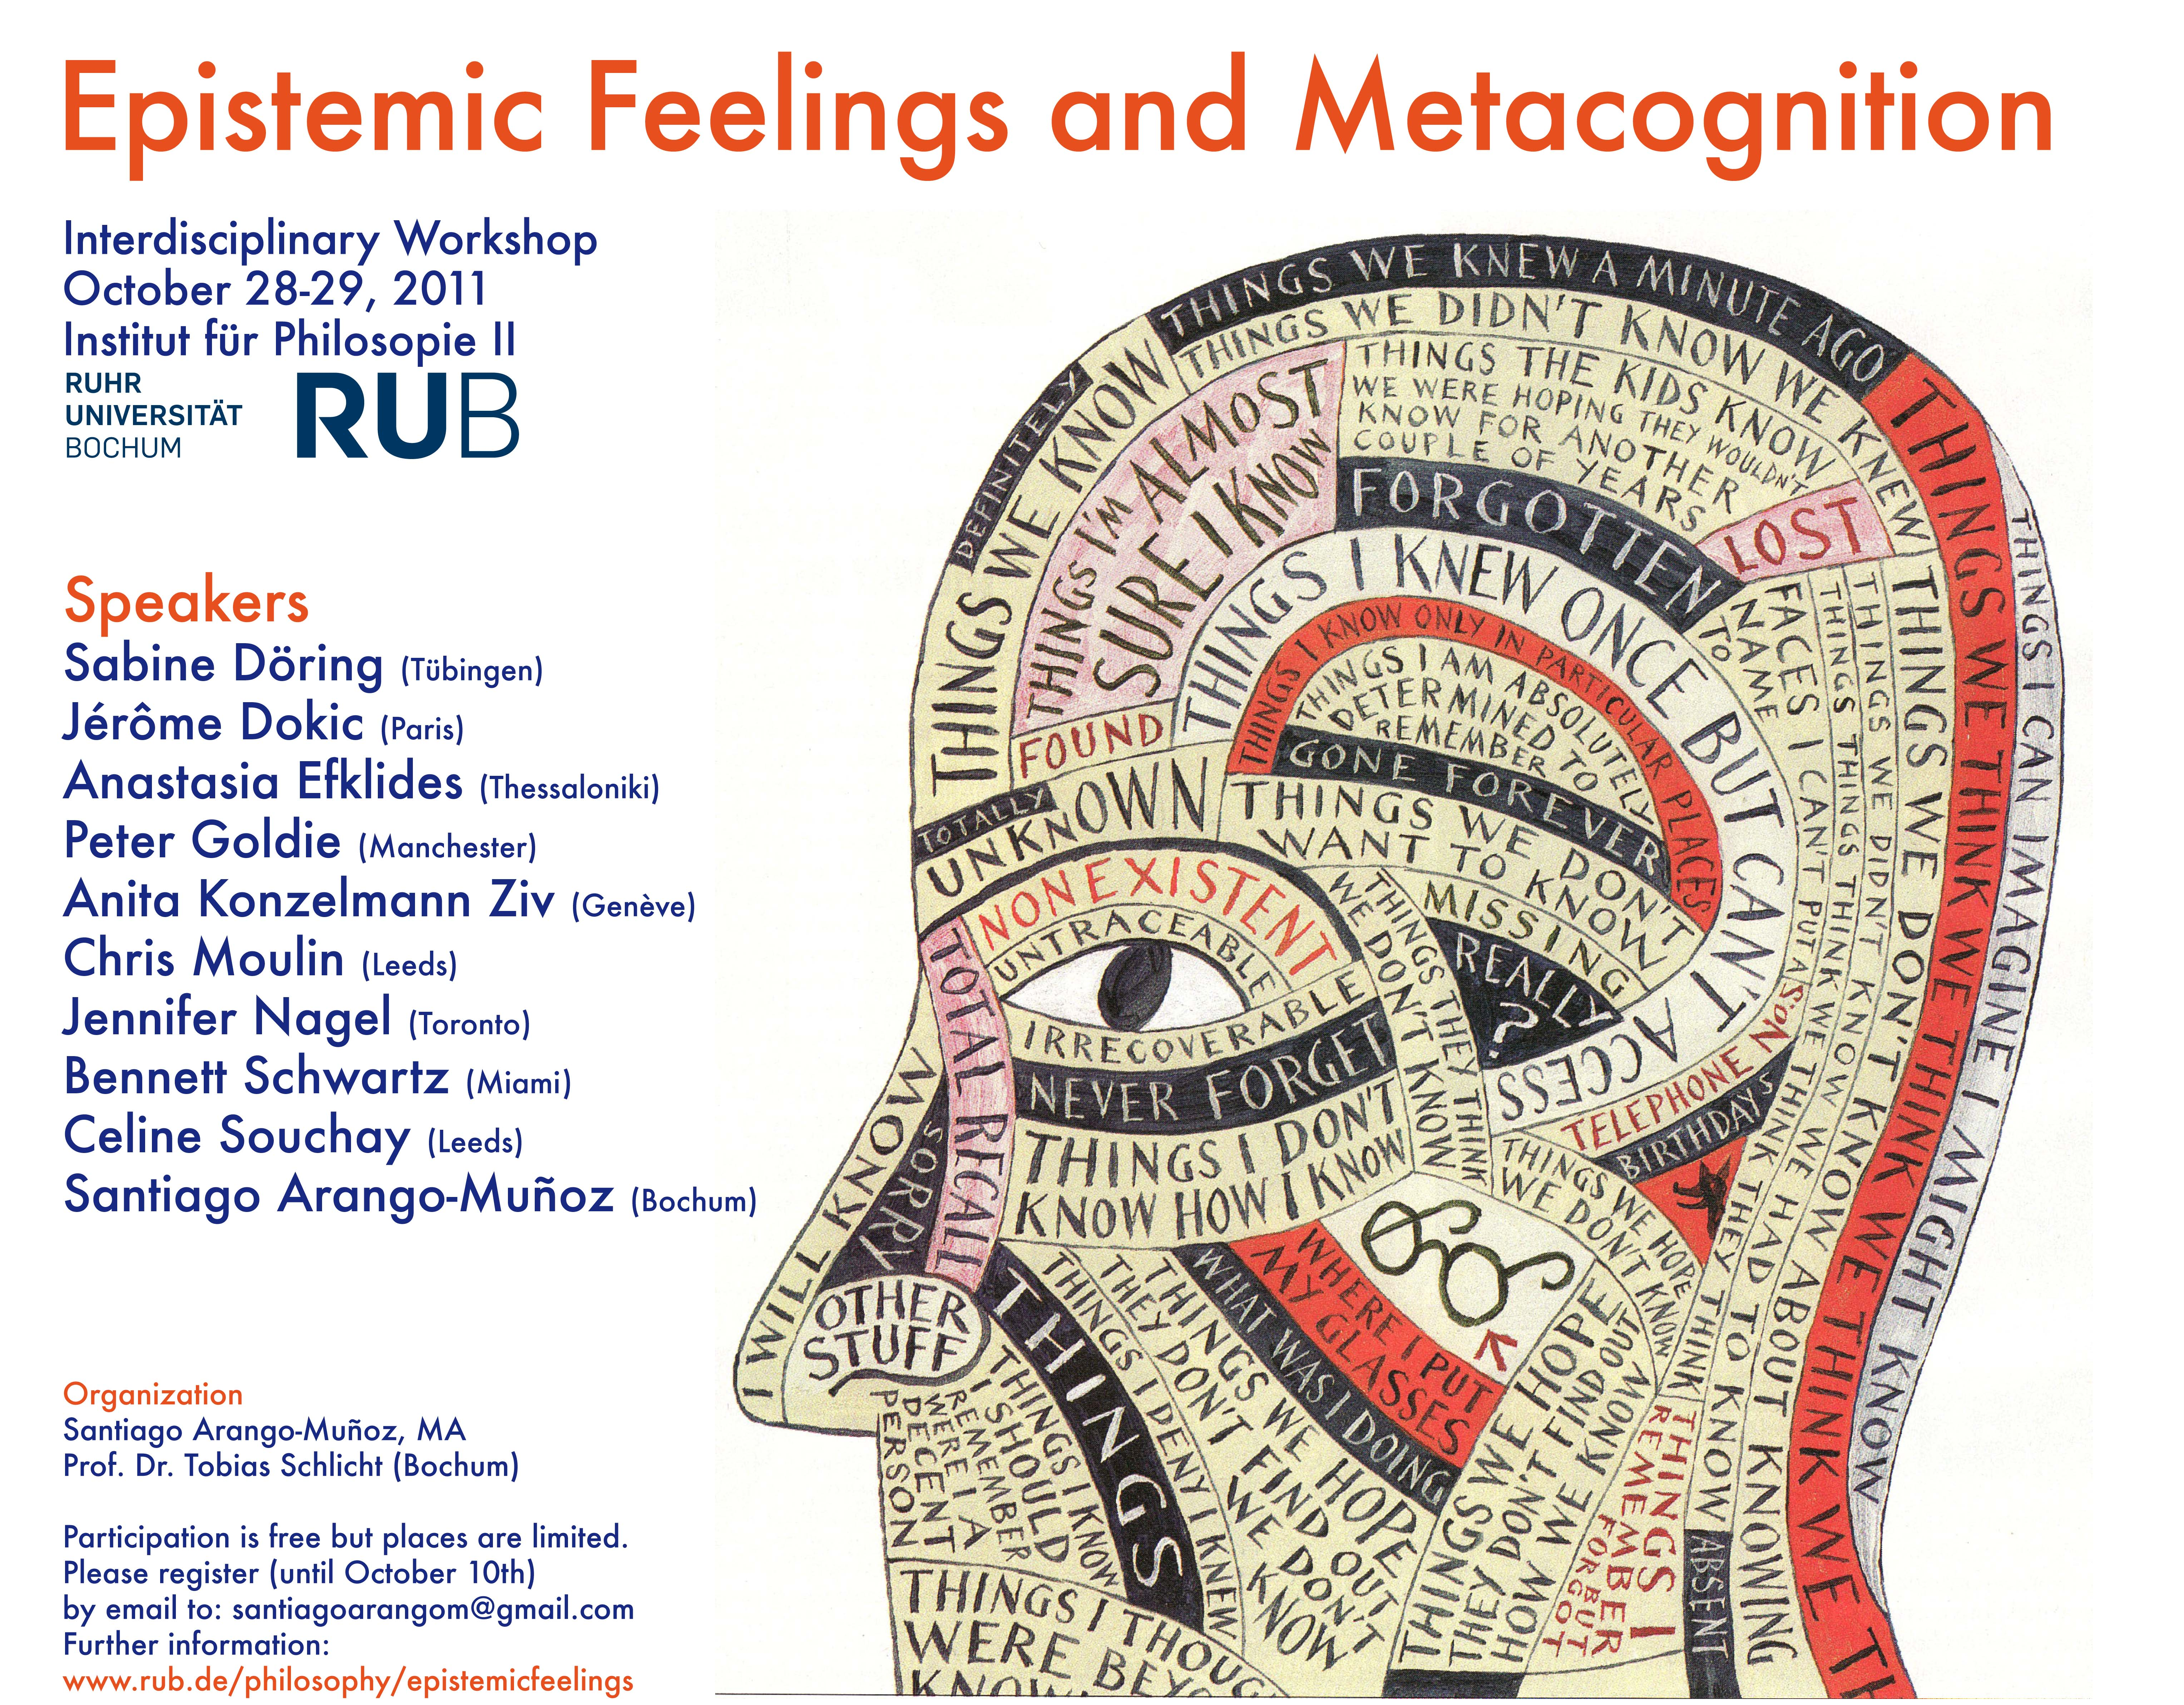 Eptistemic Feelings And Metacognition